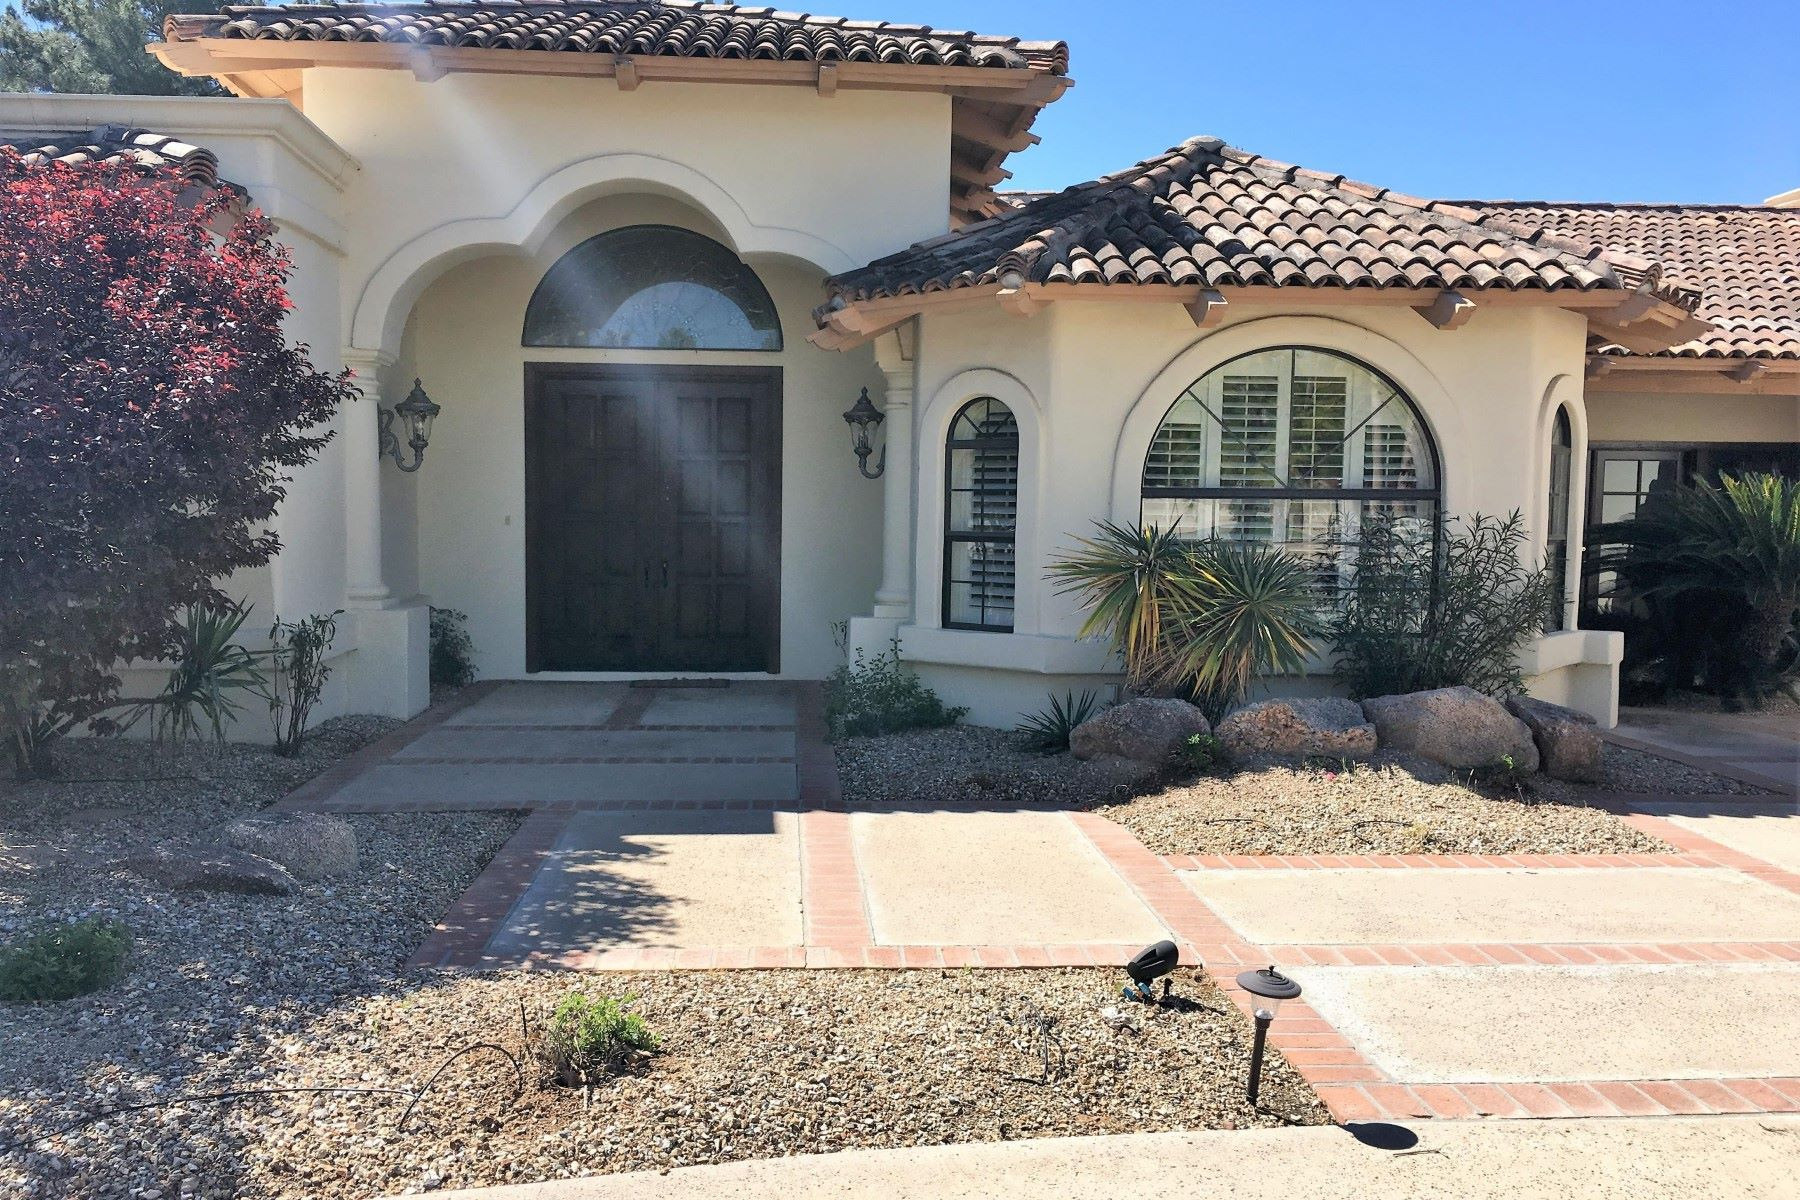 Single Family Home for Sale at Beautiful home in the highly desired Paradise Farms neighborhood 7253 E Royal Palm Rd Scottsdale, Arizona, 85258 United States